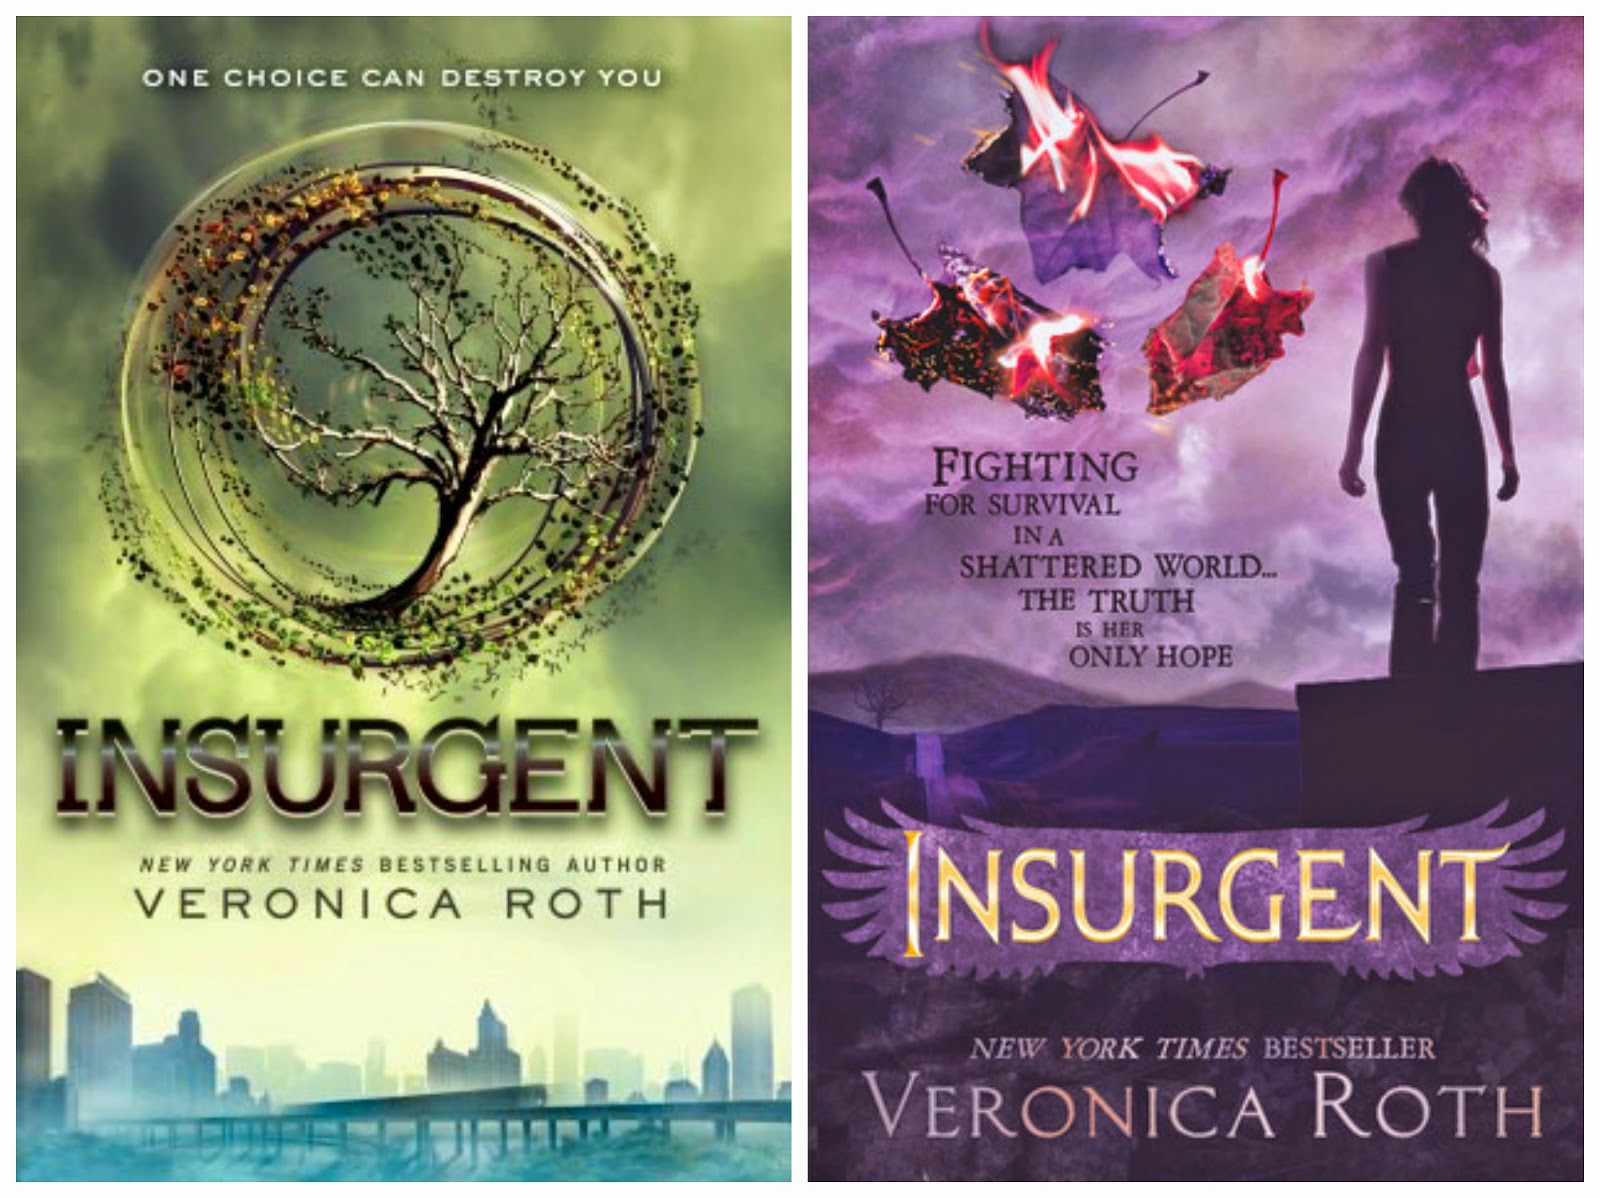 Planet Ebook Gratis: Veronica Roth : Insurgent